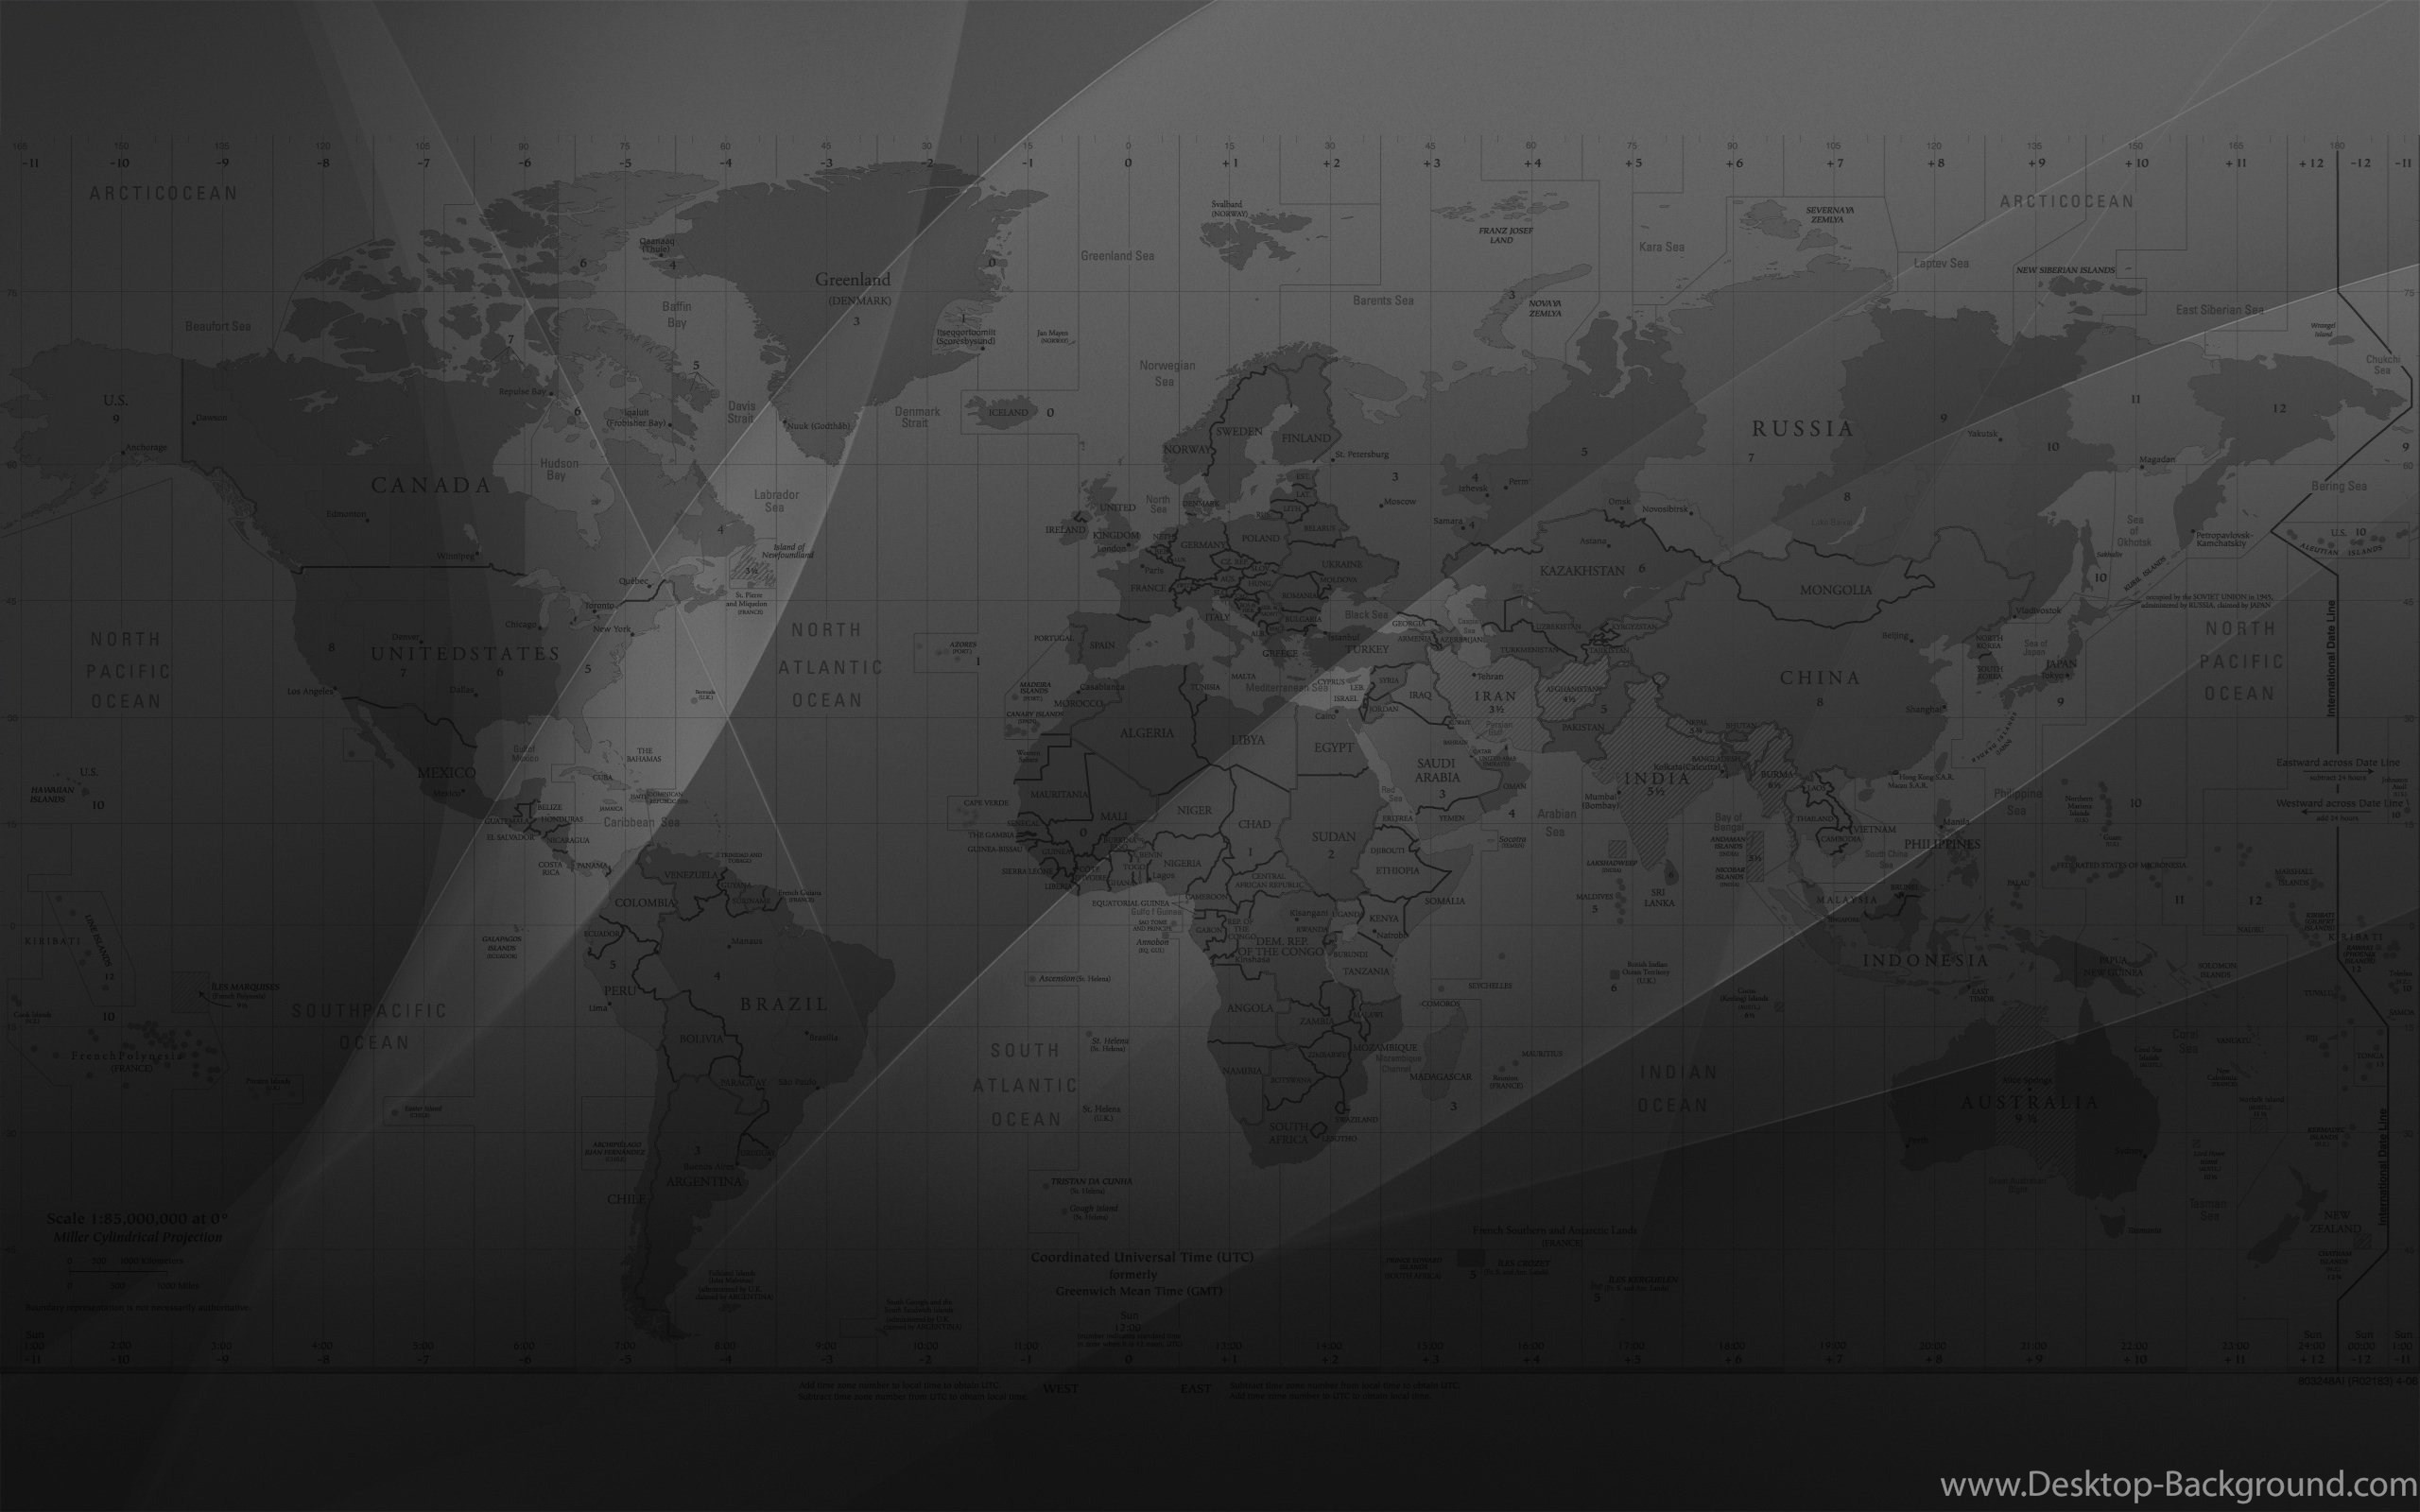 2560x1600 Wallpapers Thinkpad Time Zone Map Free Hd High Definition 1280x800 ...  Desktop Background